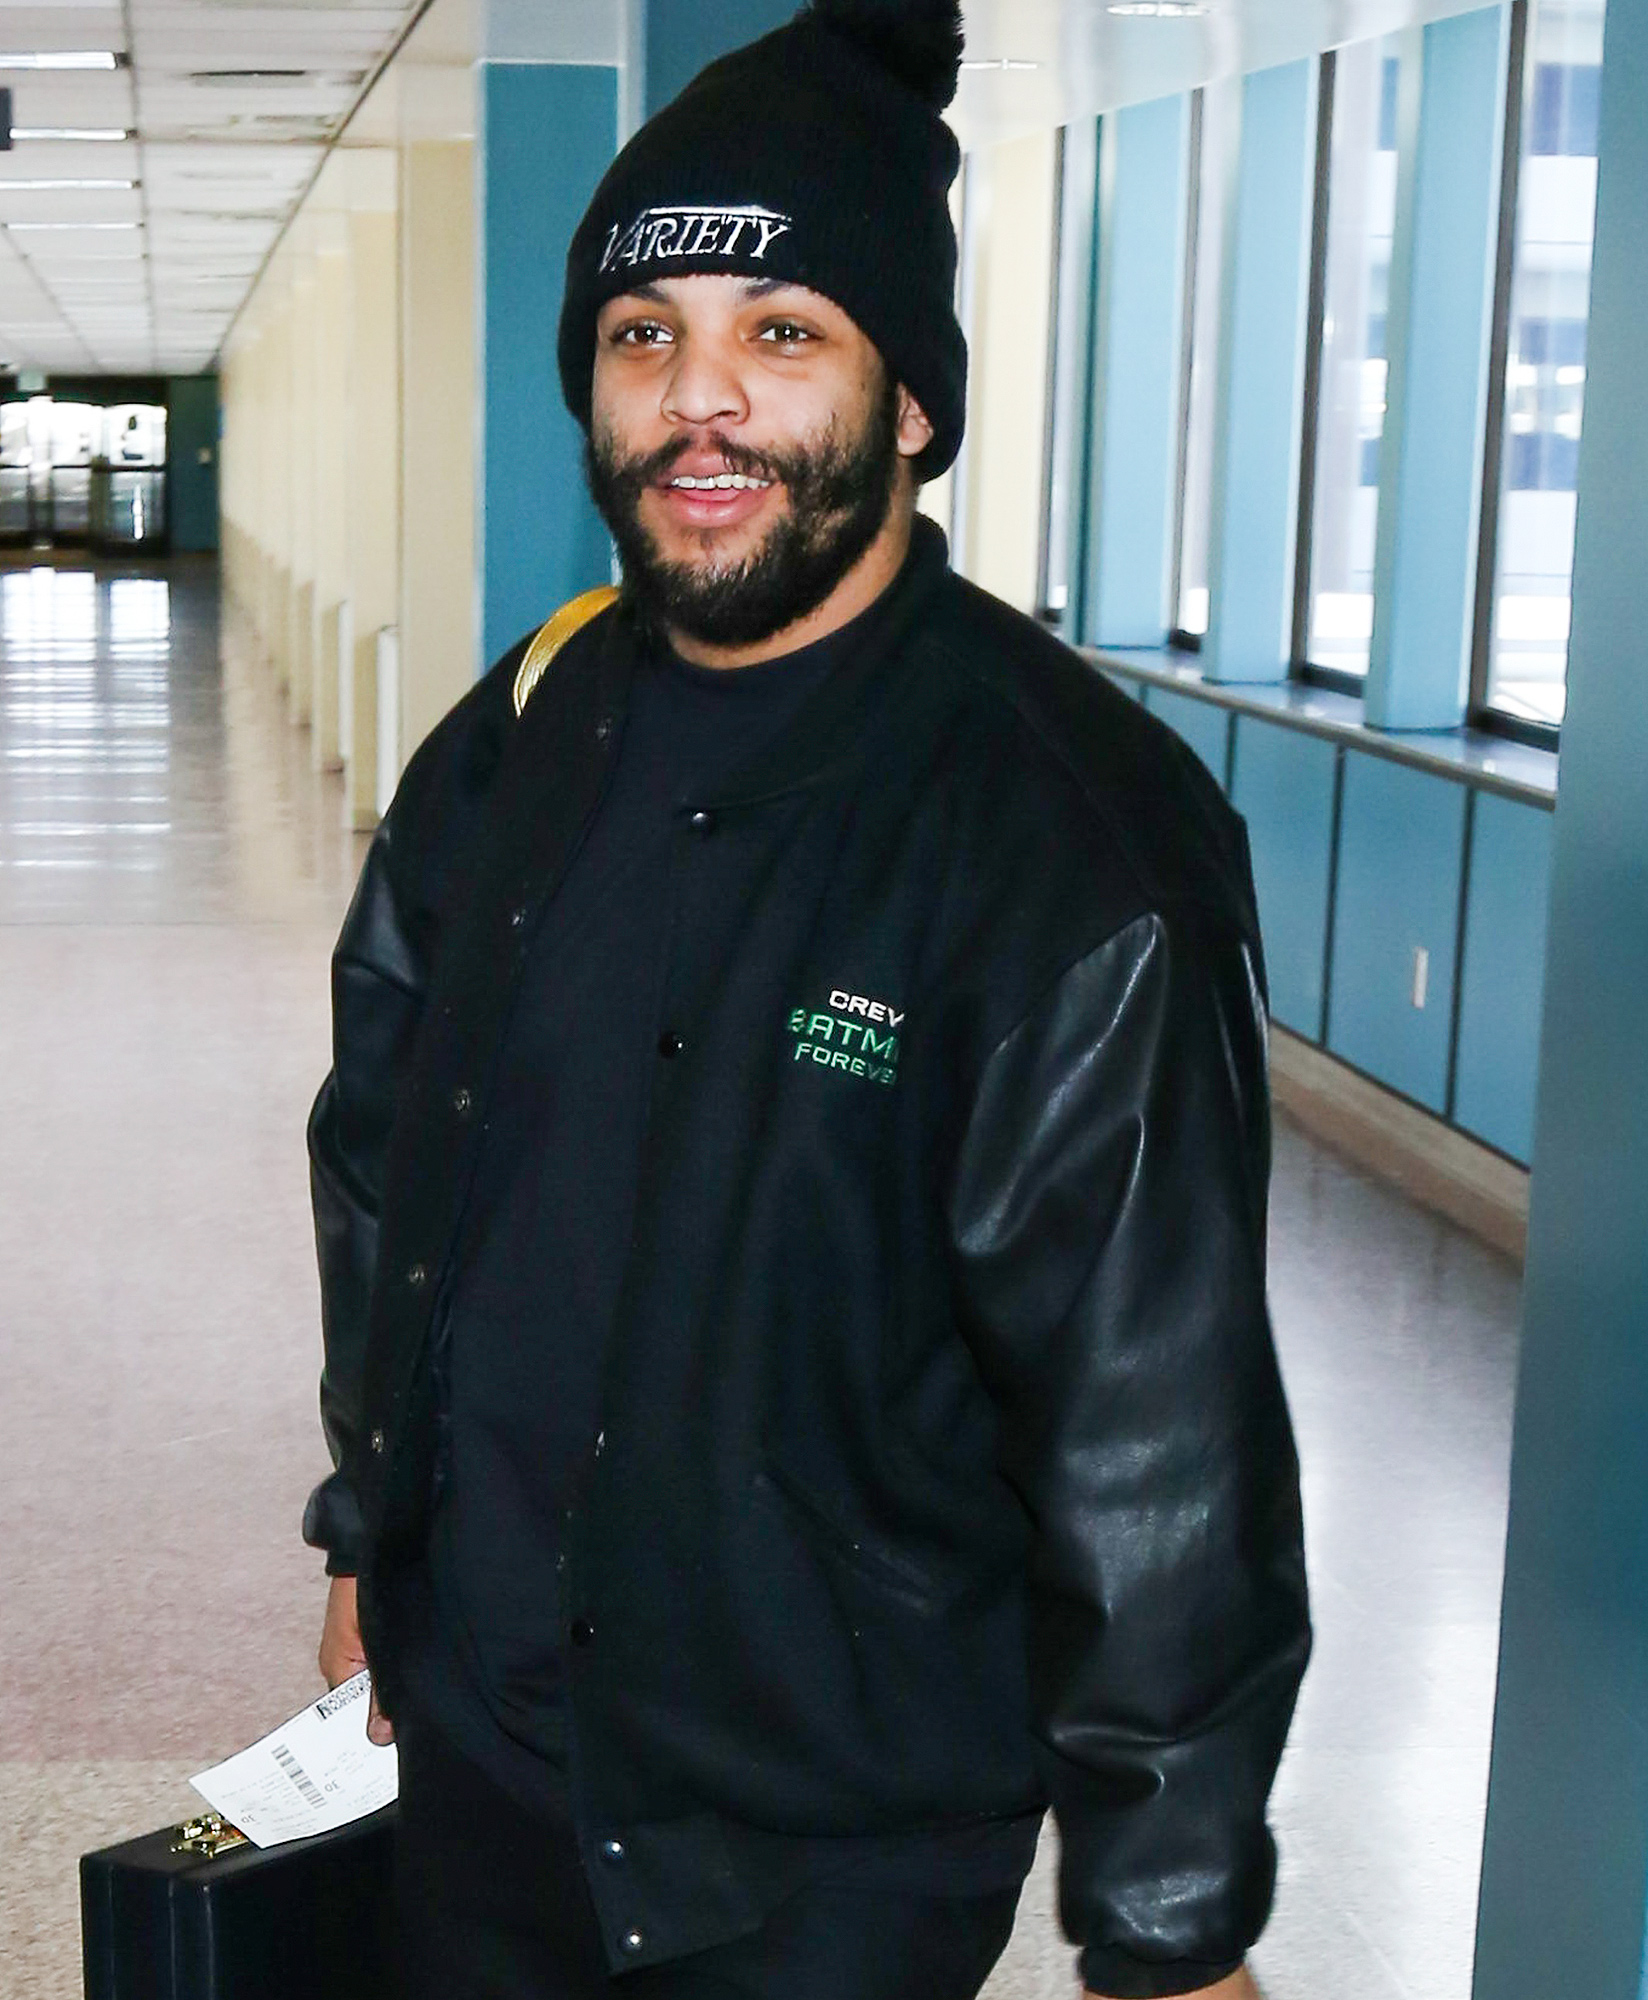 O'Shea Jackson Jr. is all smiles at the SLC Airport ahead of the Sundance Film Festival